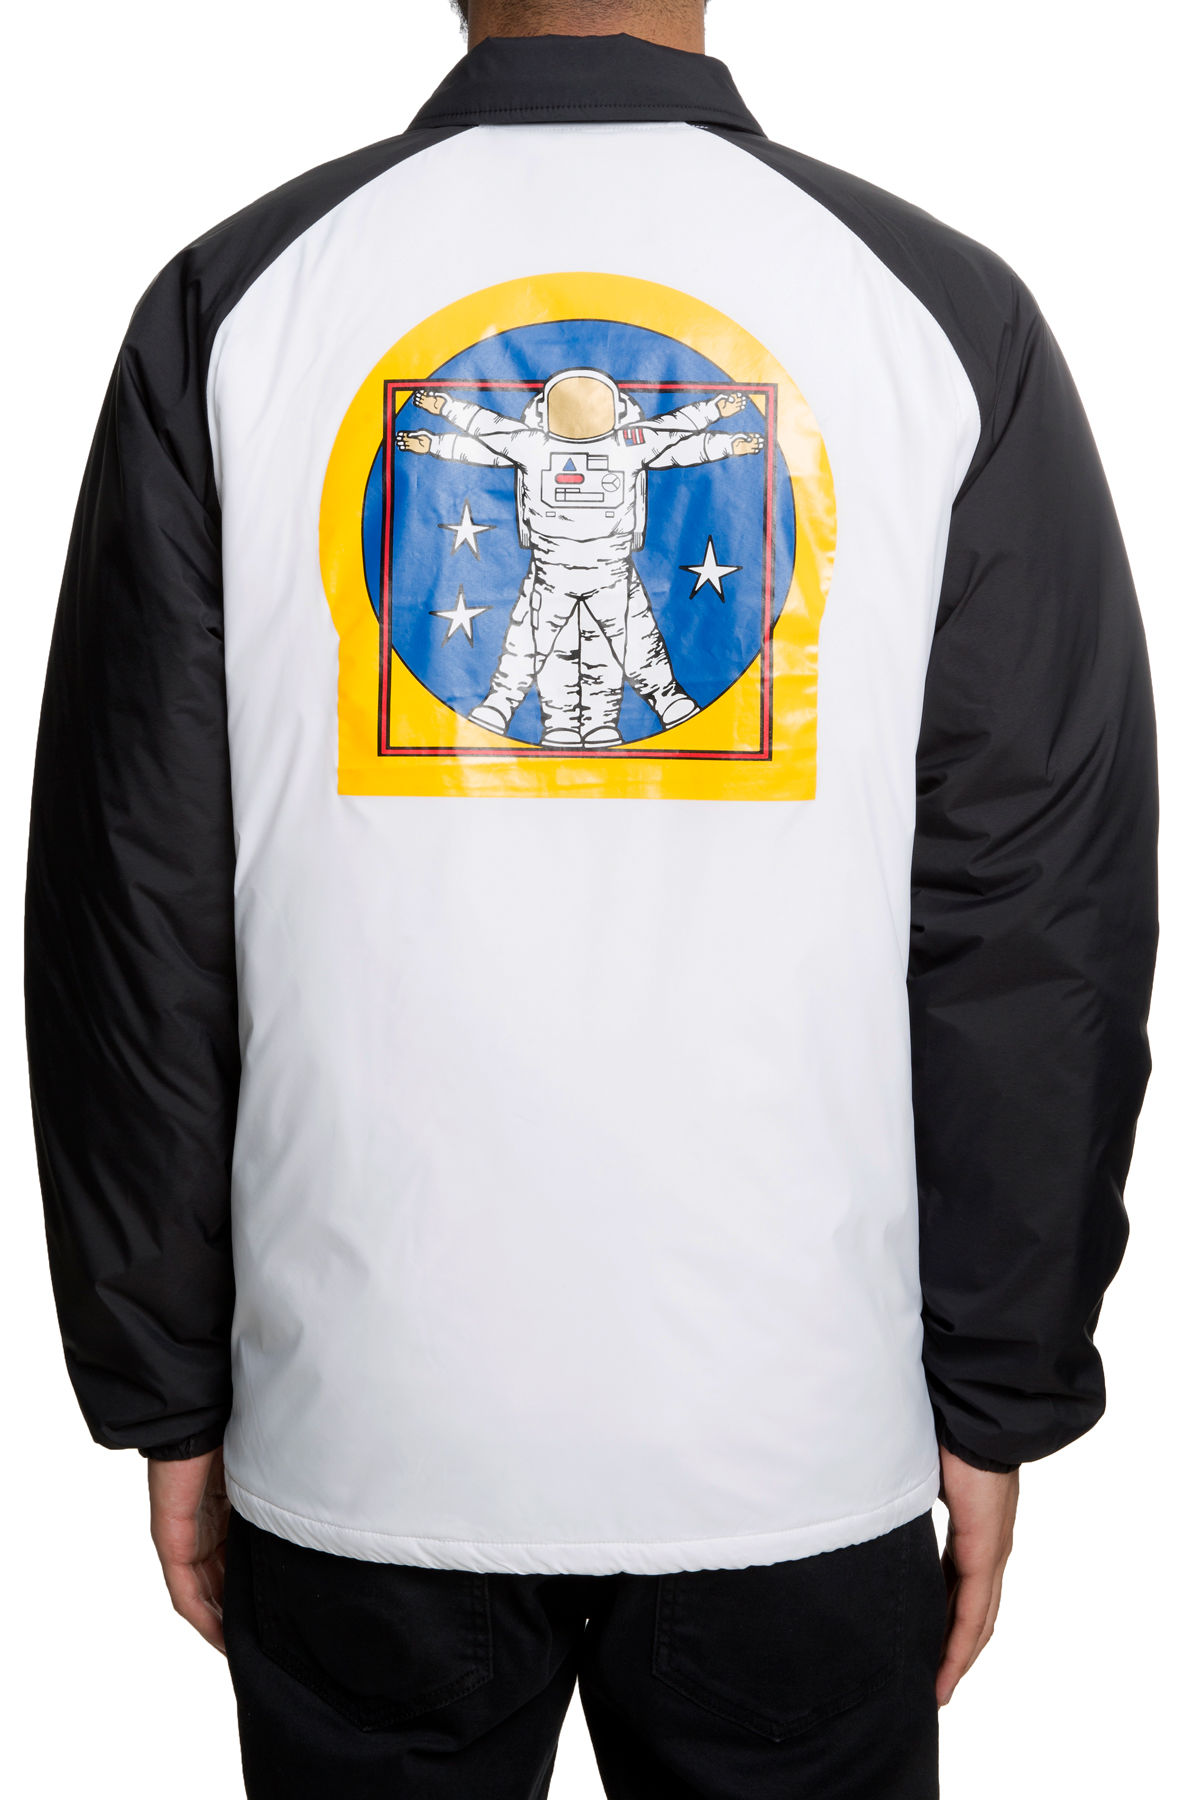 The M VANS SPACE TORREY PADDED MTE Jacket in Space White and Black